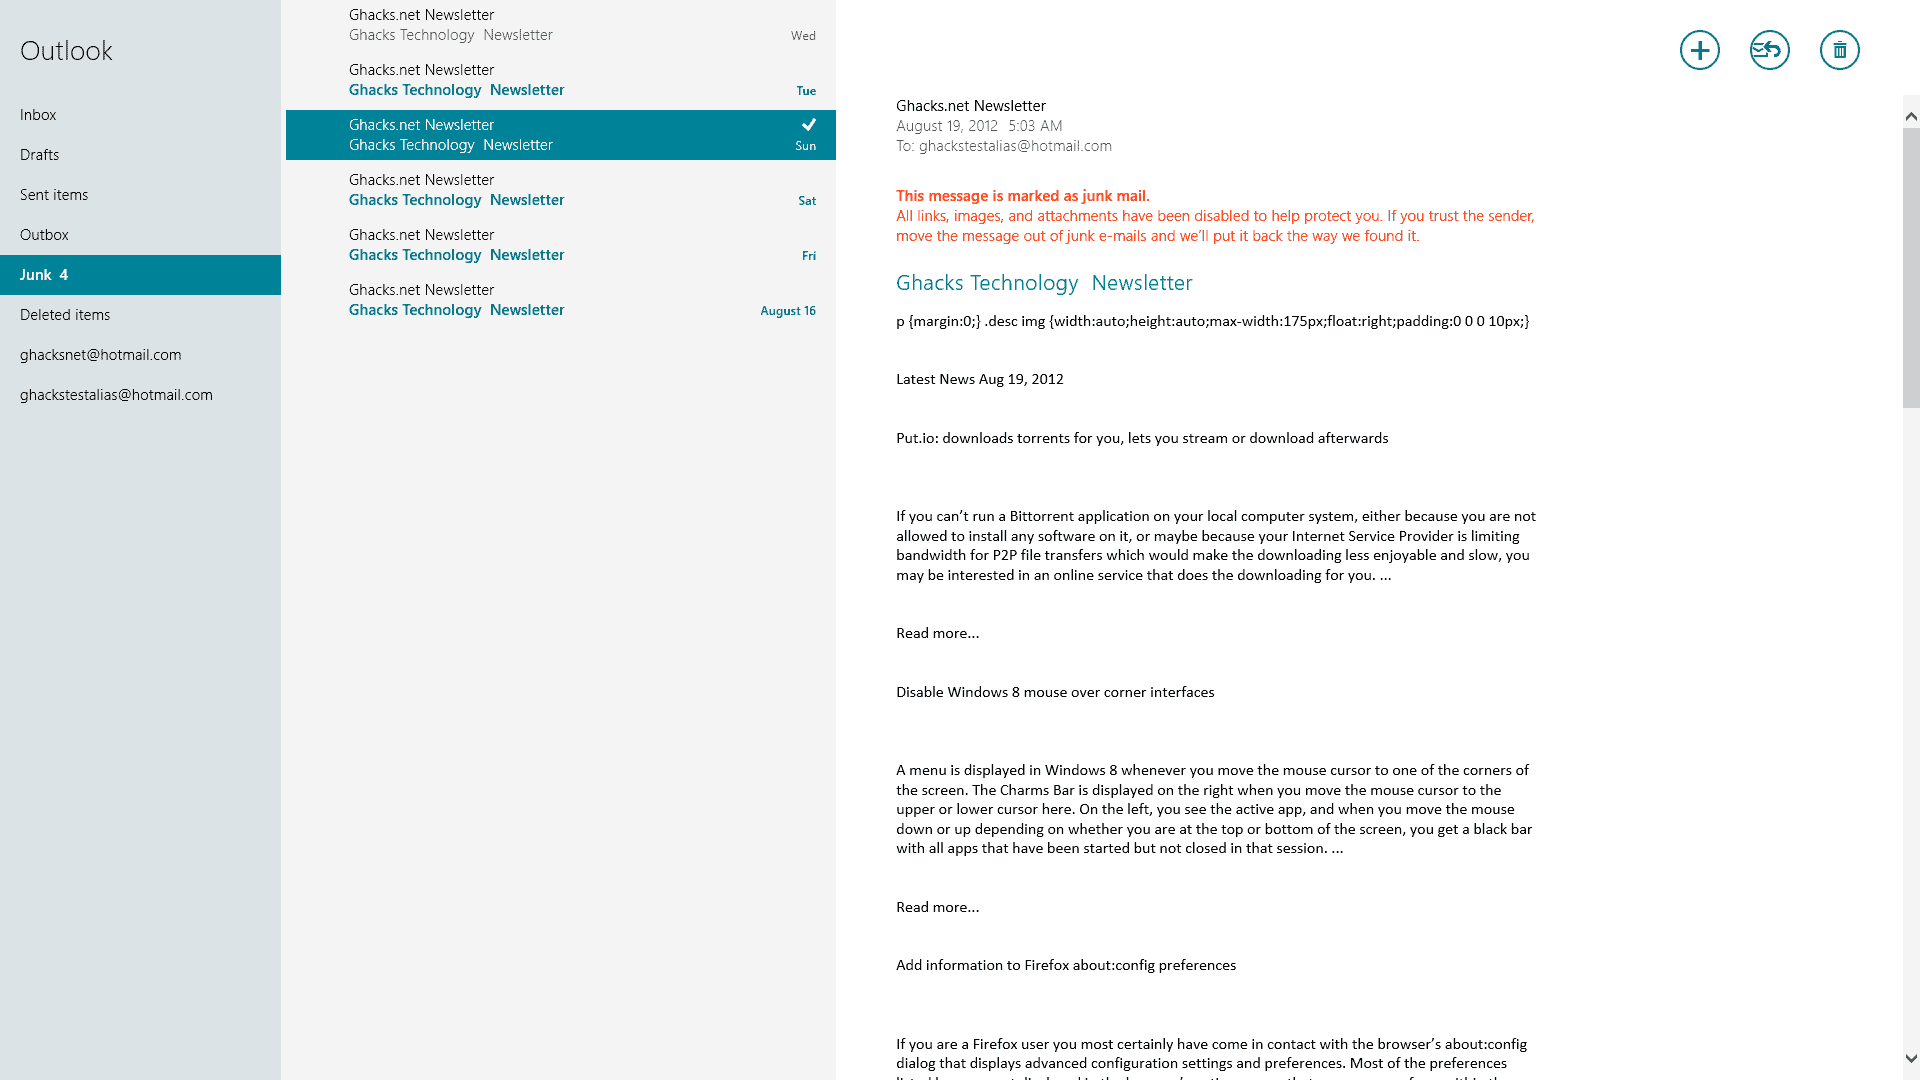 how to add p.s to email